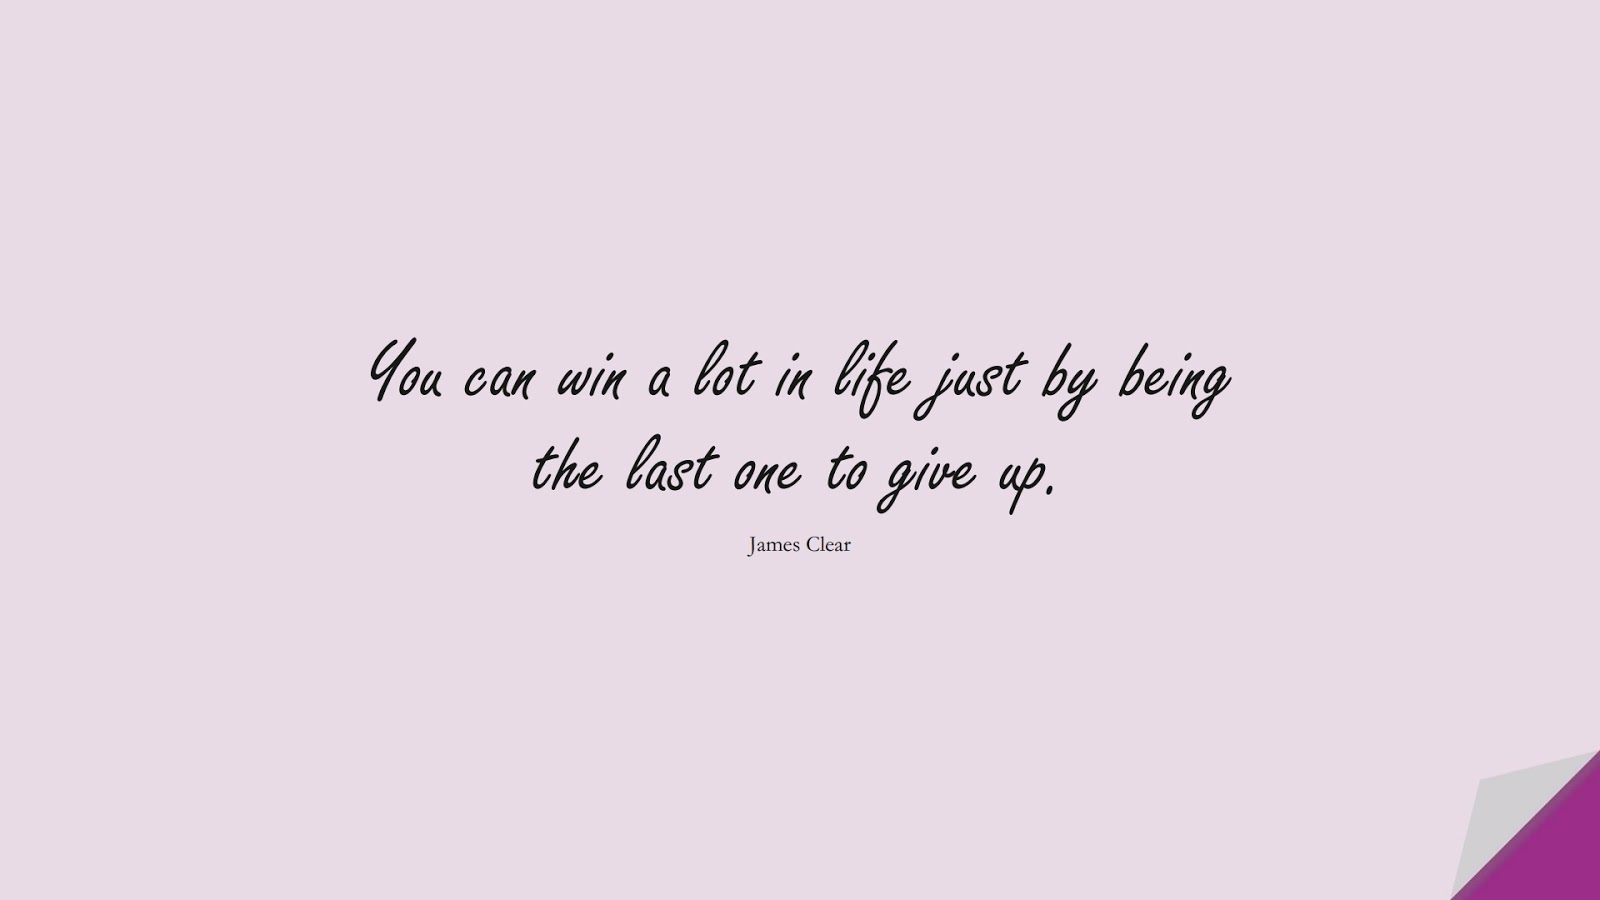 You can win a lot in life just by being the last one to give up. (James Clear);  #NeverGiveUpQuotes